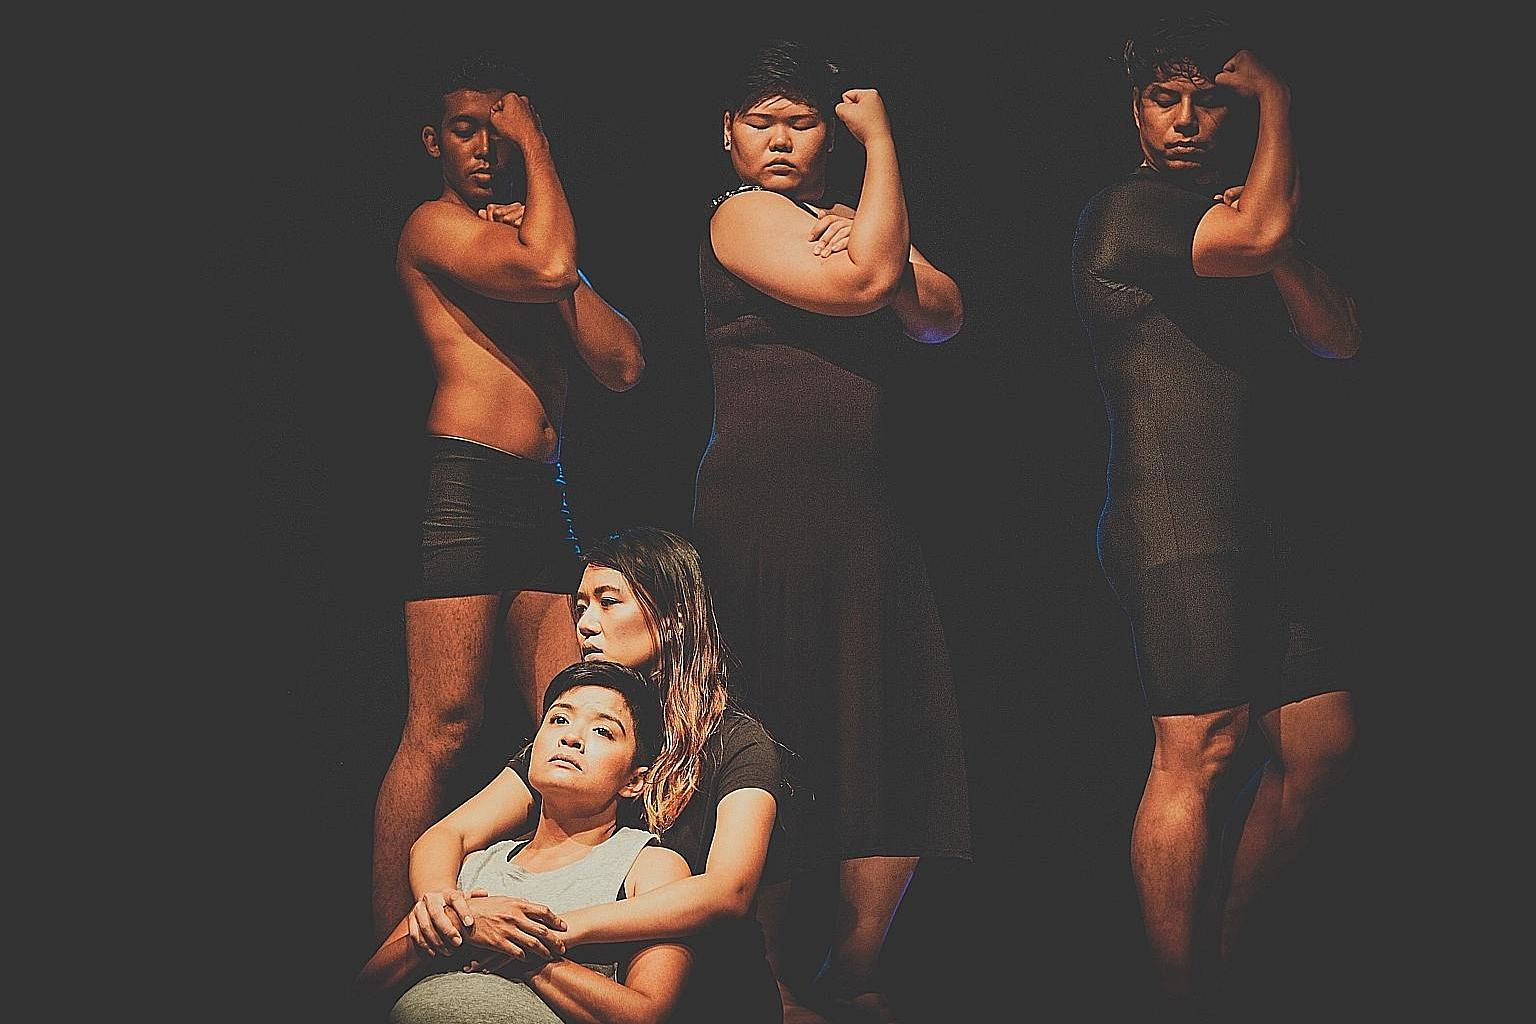 (Top row, from far left) Fadhil Daud, Deonn Yang and Henrik Cheng, (bottom, from far left), Farah Ong and Shannen Tan play characters uncomfortable with their own bodies.